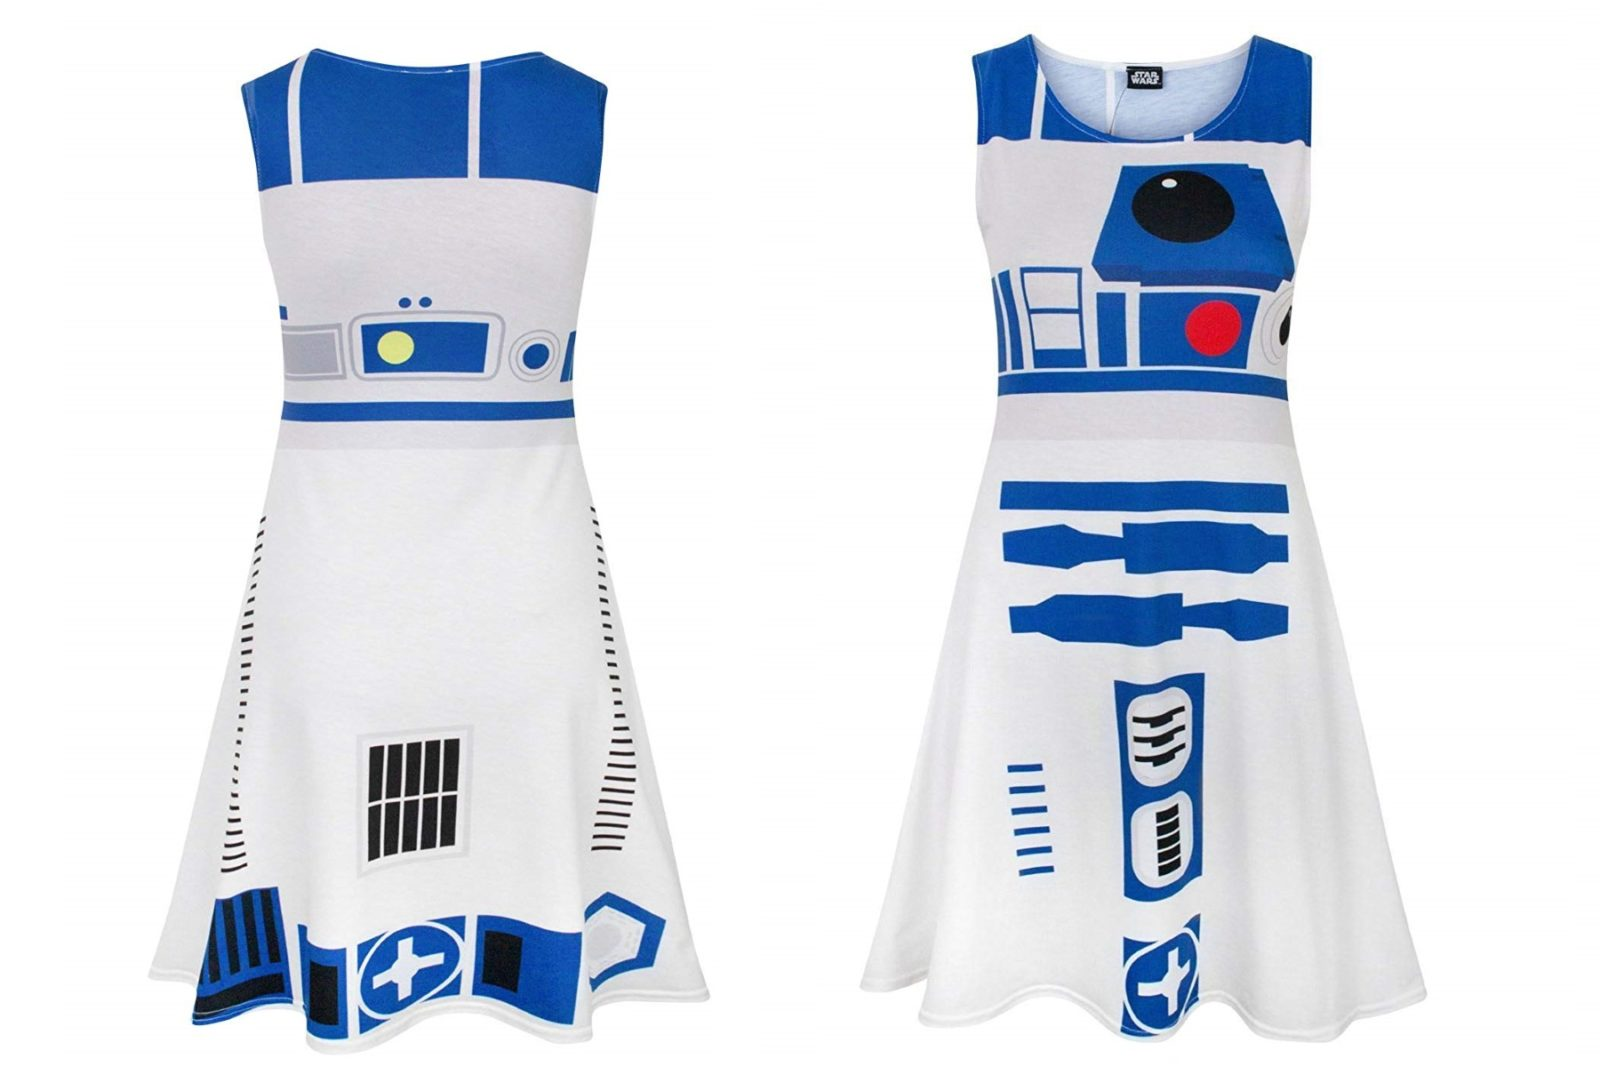 Women's R2-D2 Cosplay Style Dress on Amazon